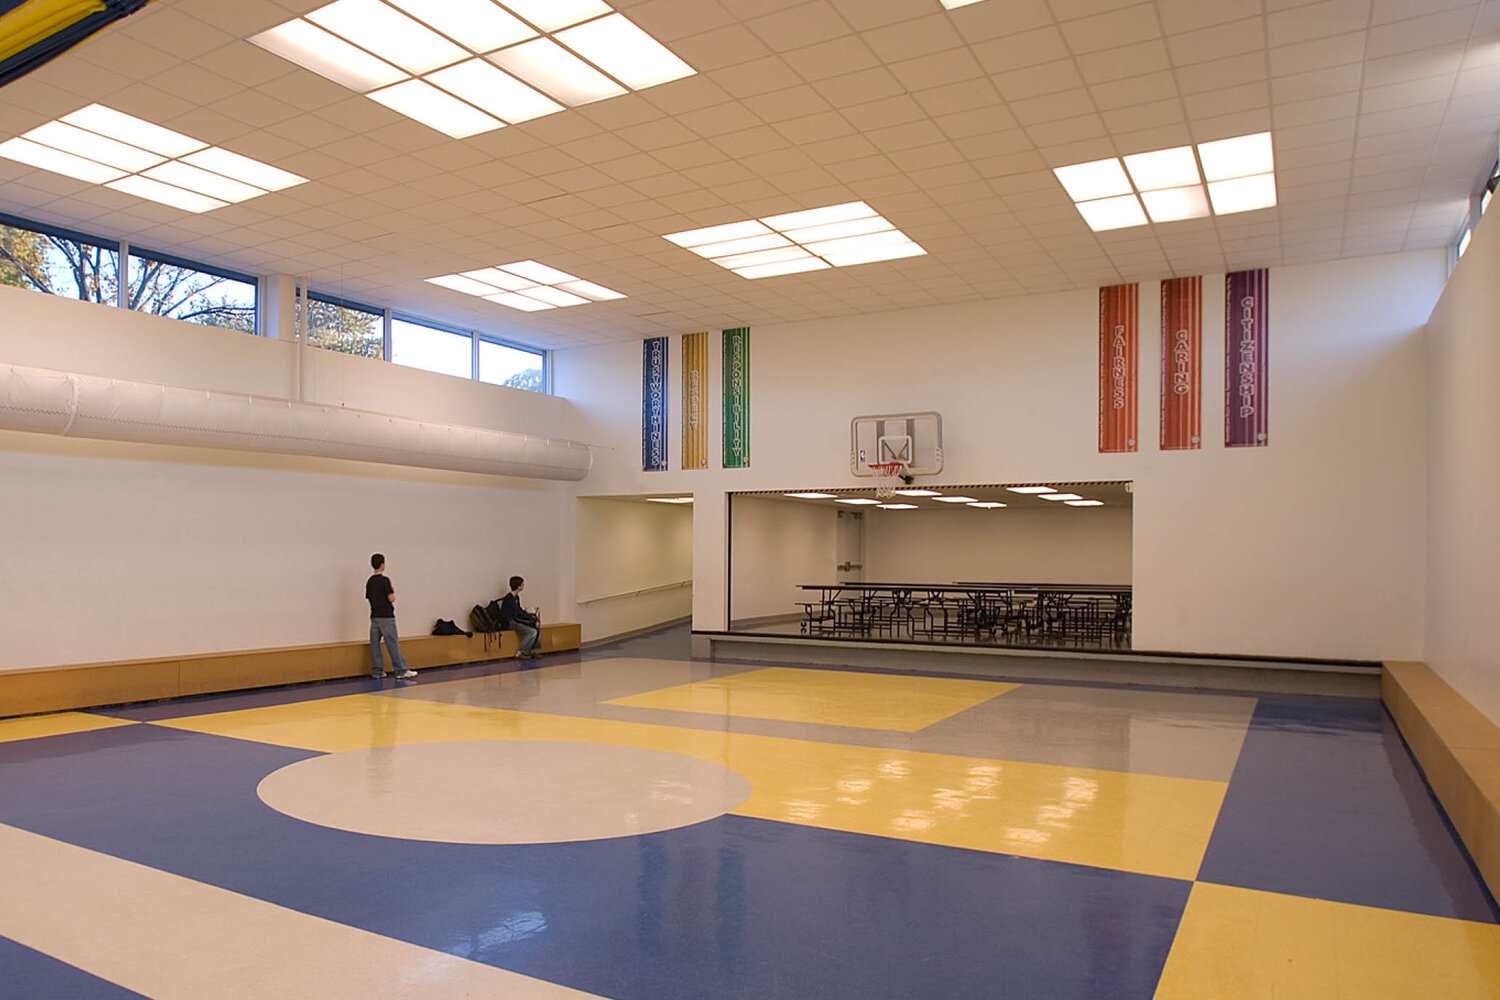 Gym at The Cove School.